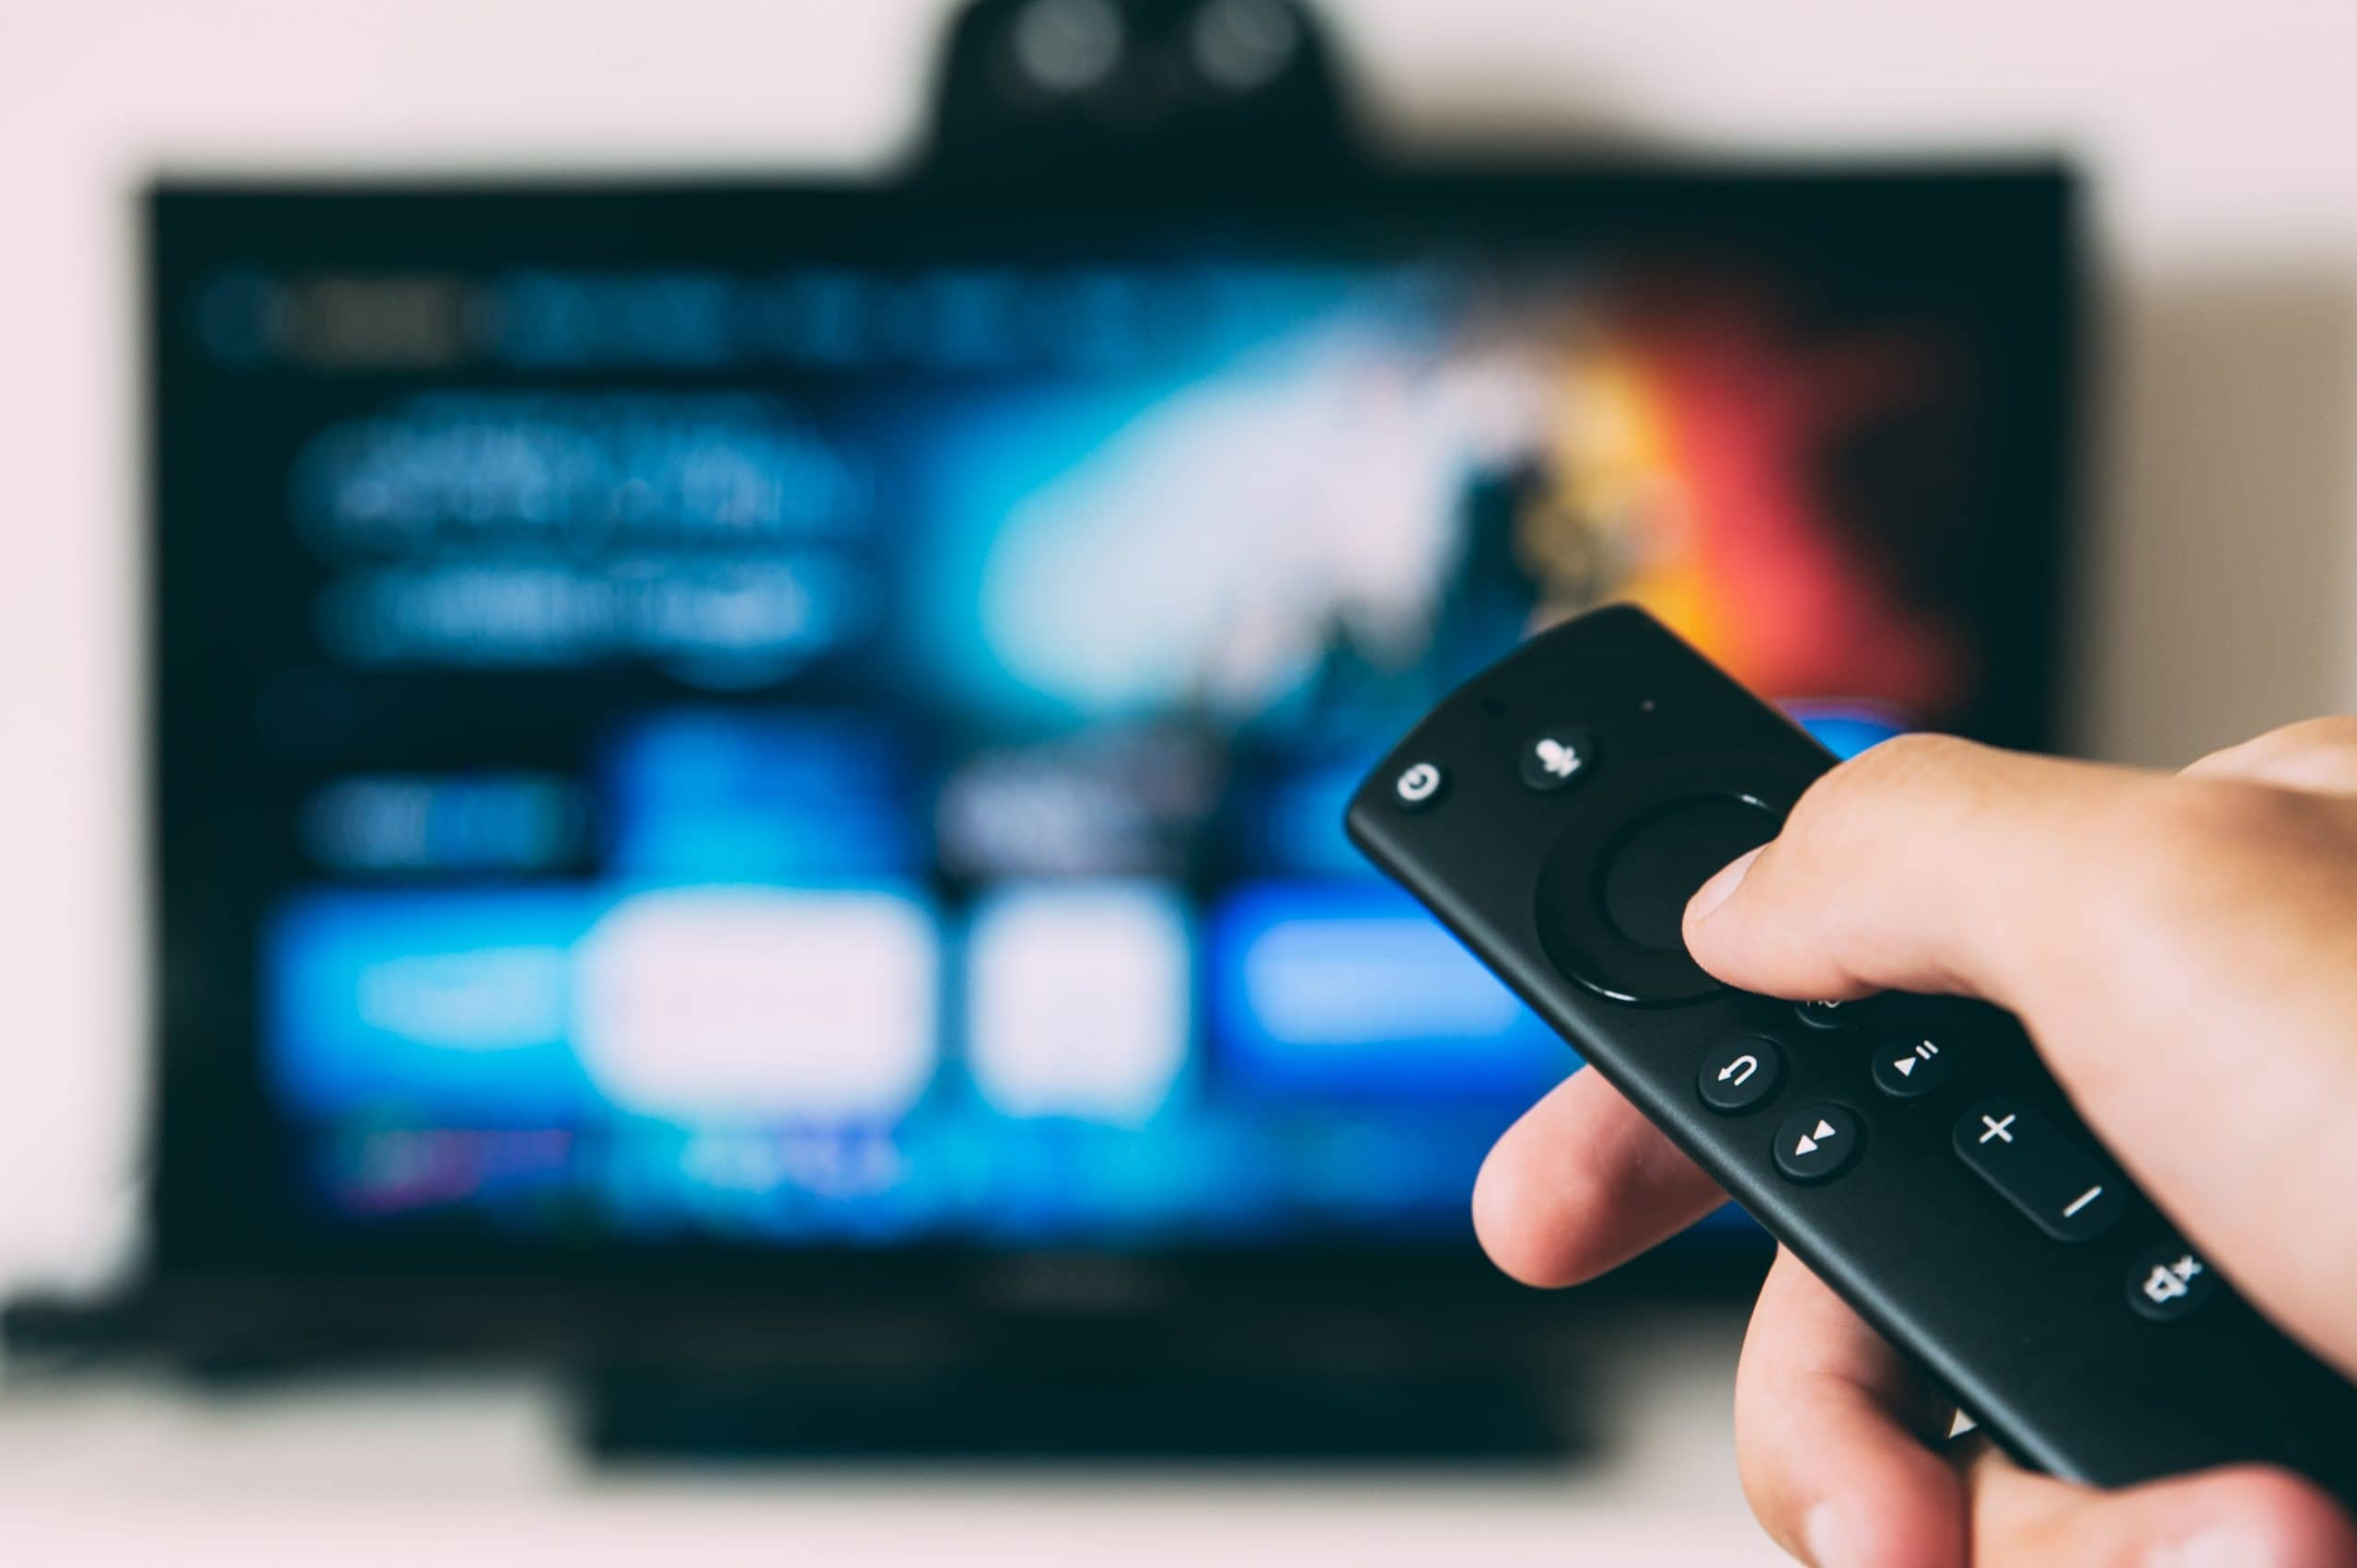 How to Create IGTV Videos - An image of someone watching TV